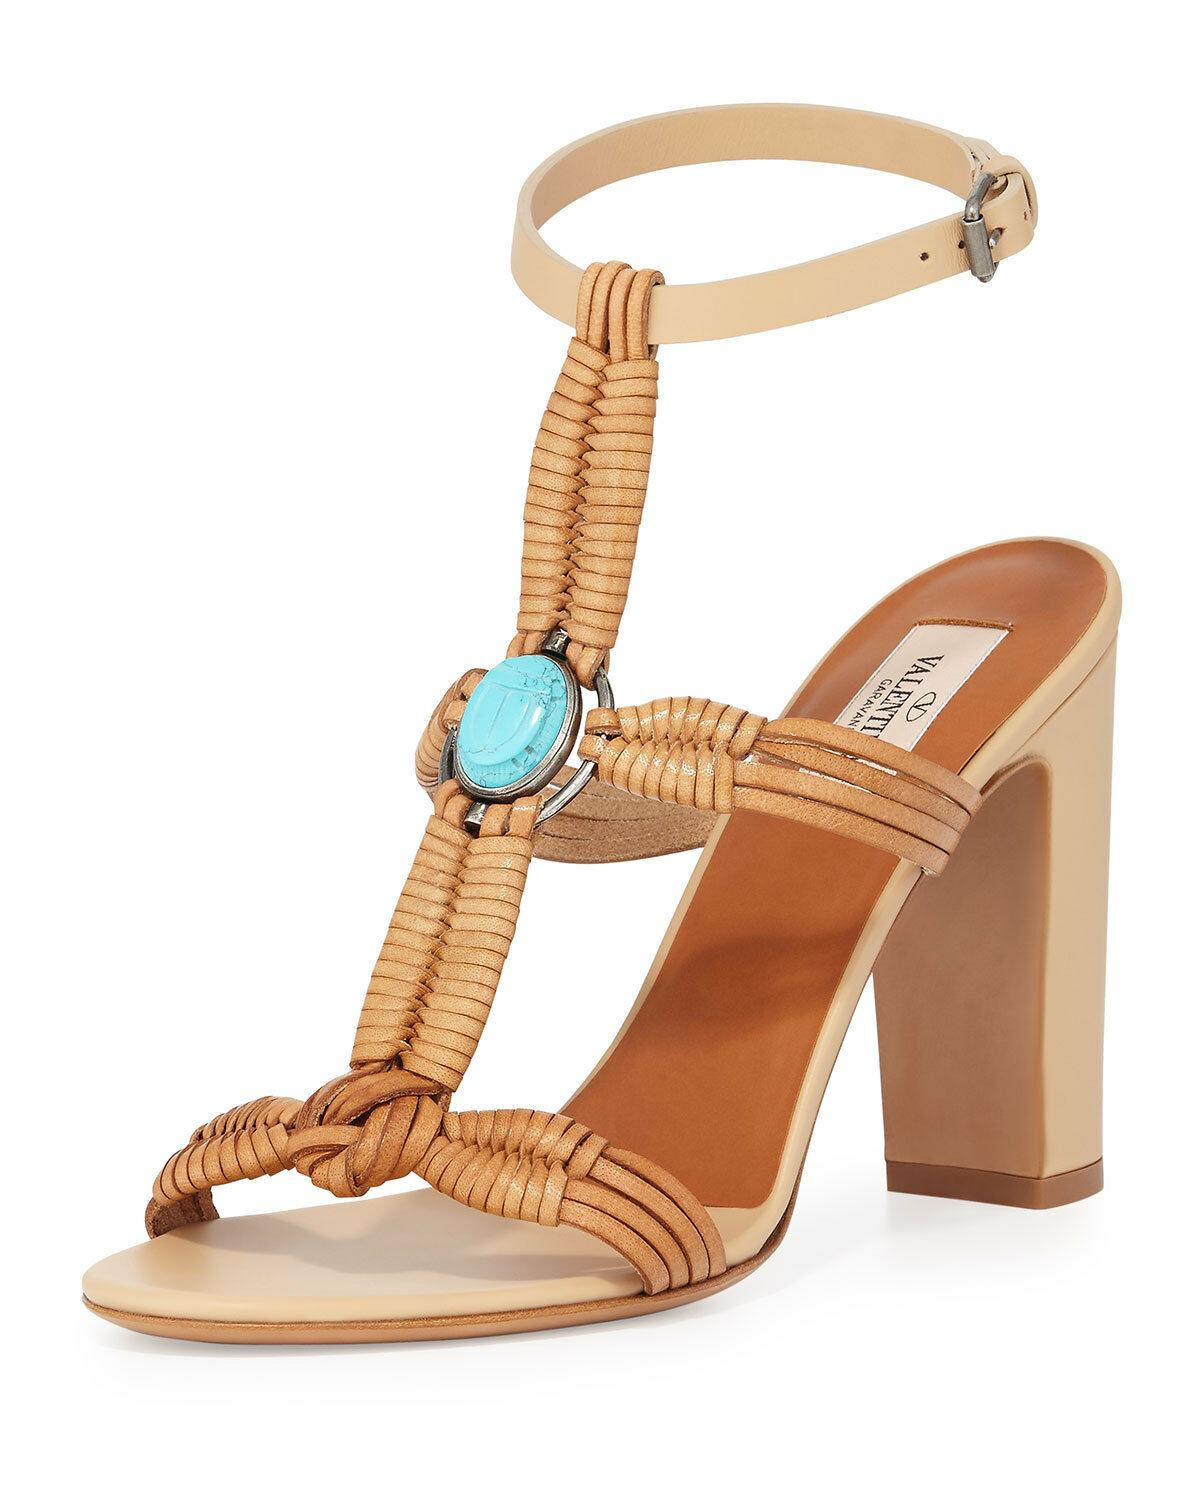 $1295 Valentino Embellished Woven Leather Sandals Beige Turquoise Shoes 40